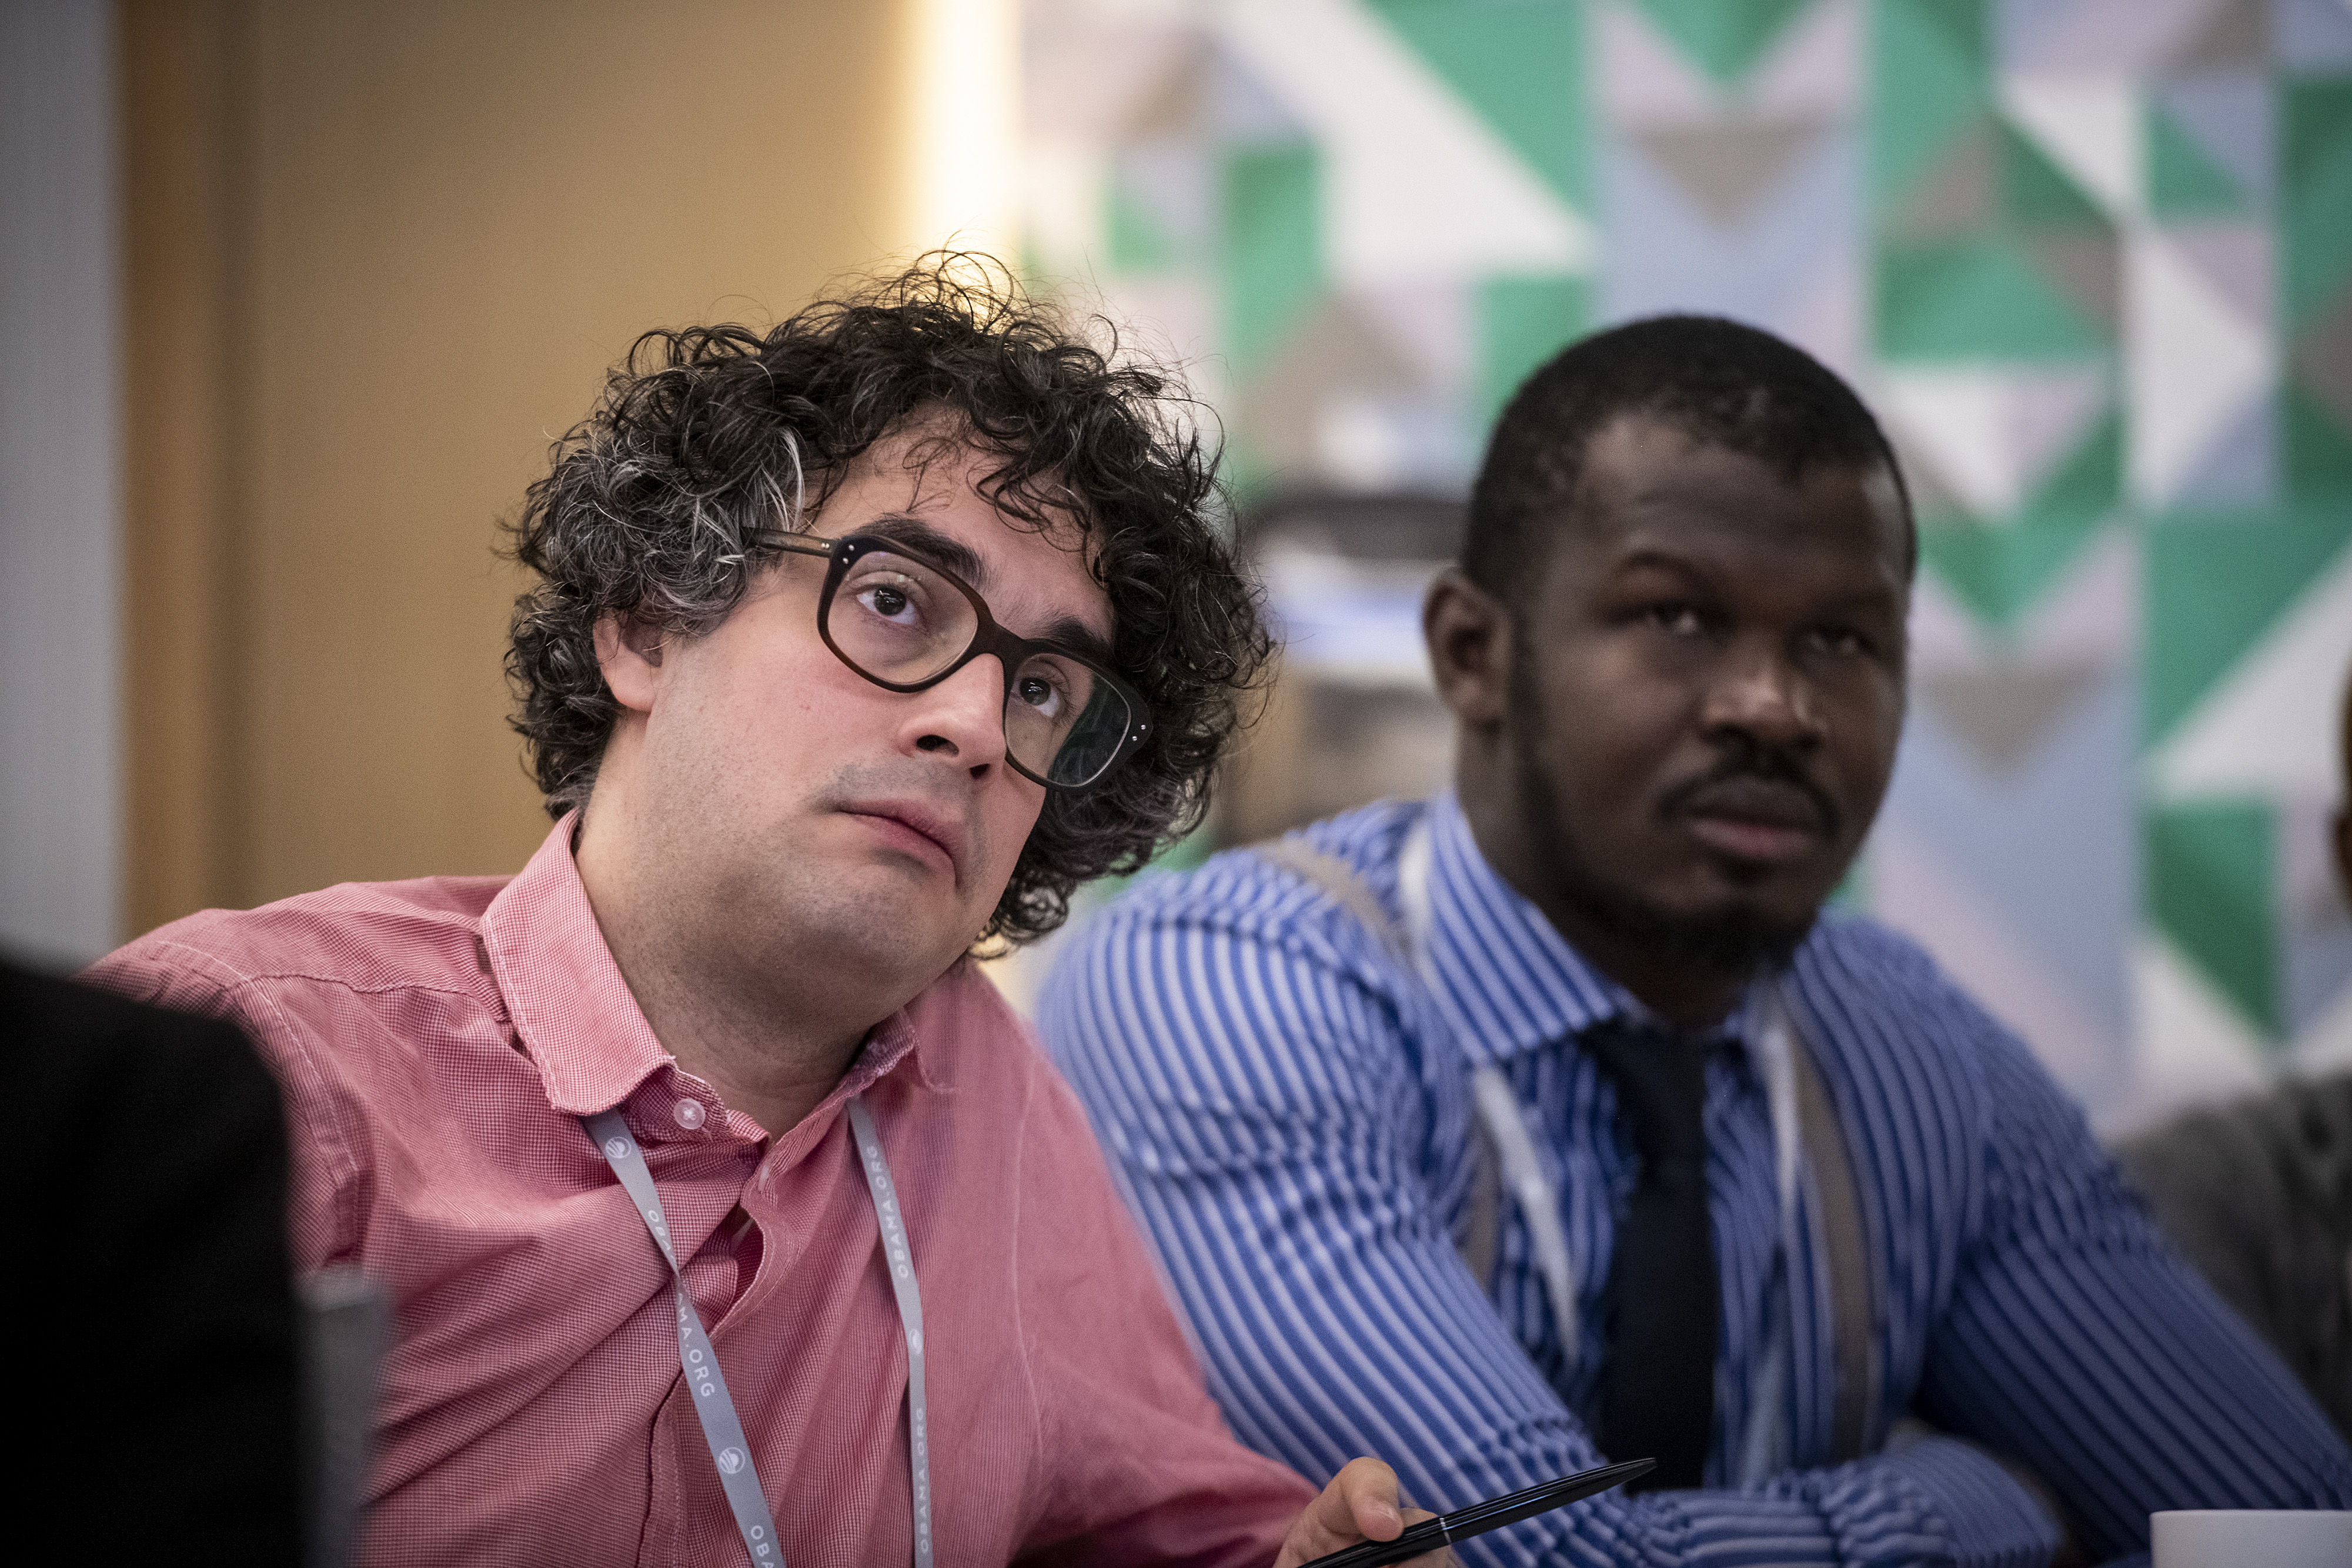 Moussa Kondo and Sandor Lederer, 2018 Obama Foundation Fellows.